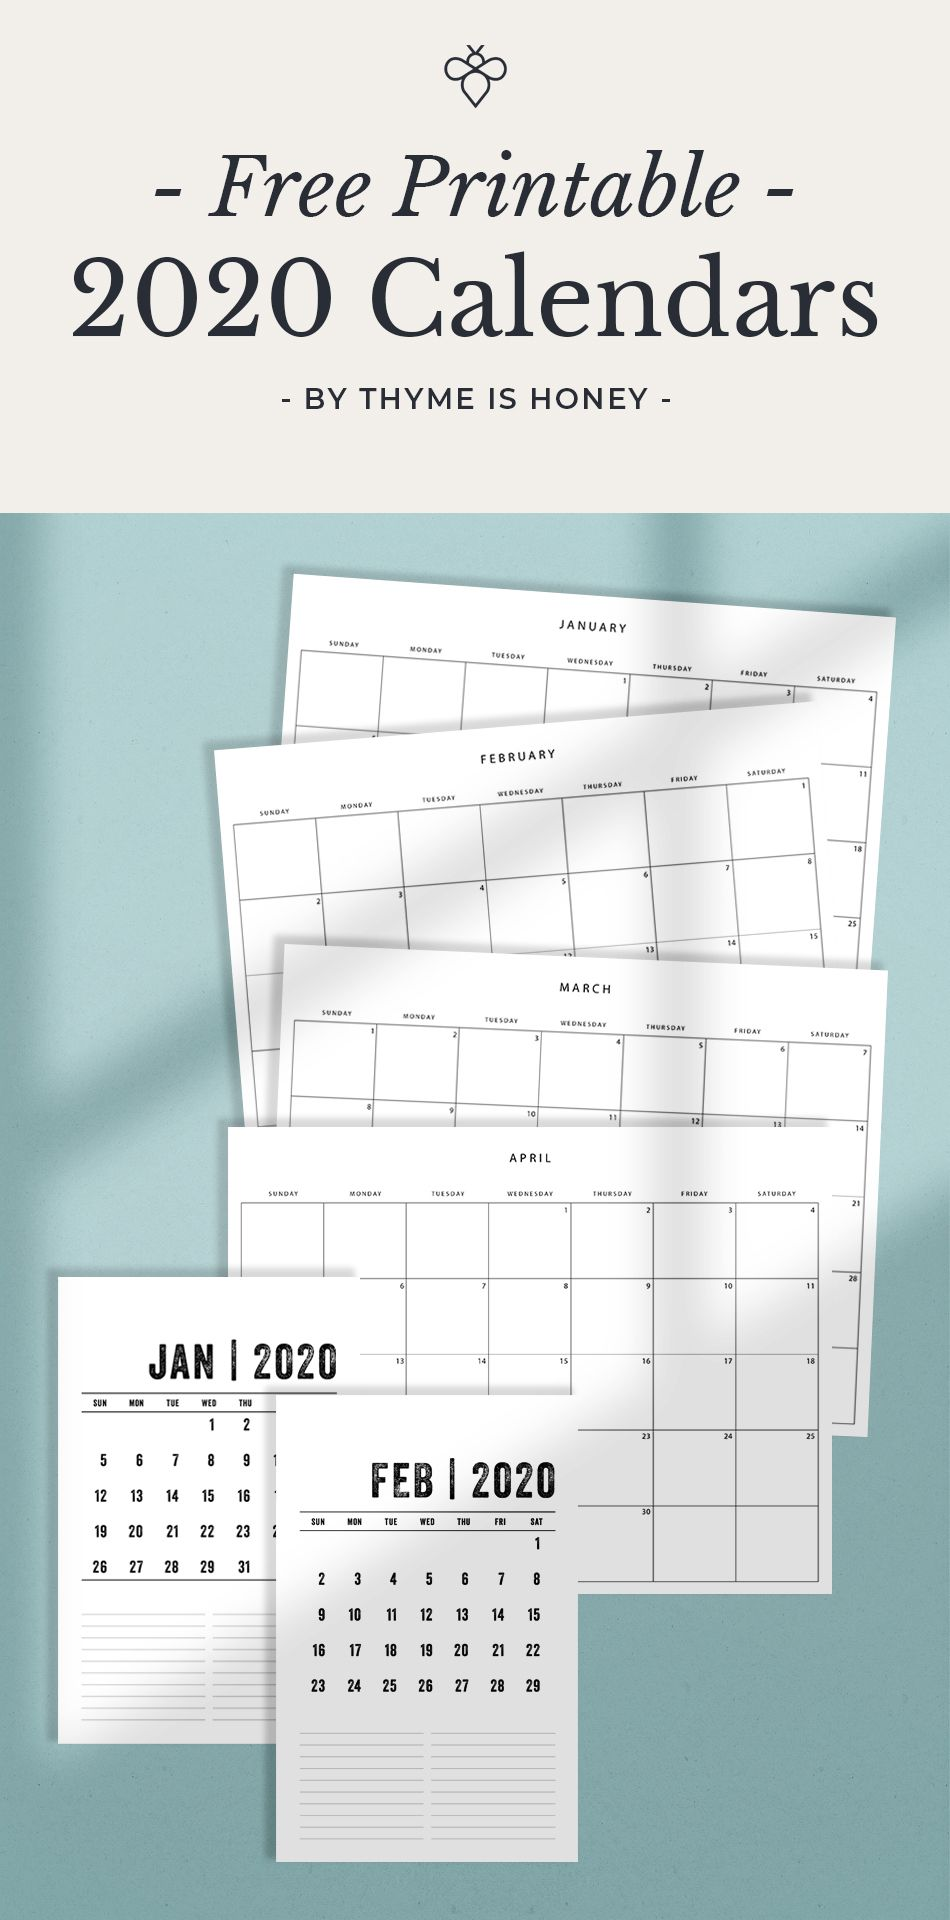 Free Printable 2020 Calendars: simple, minimalist calendars to help you organize your year   Designed by Thyme is Honey. . . Organization   Planning   2020   New Year   Wellness   Health   Office Decor   Planner   Printable   Free Calendar   Teacher Printables   2020     Bulletin Board   Paper   Design